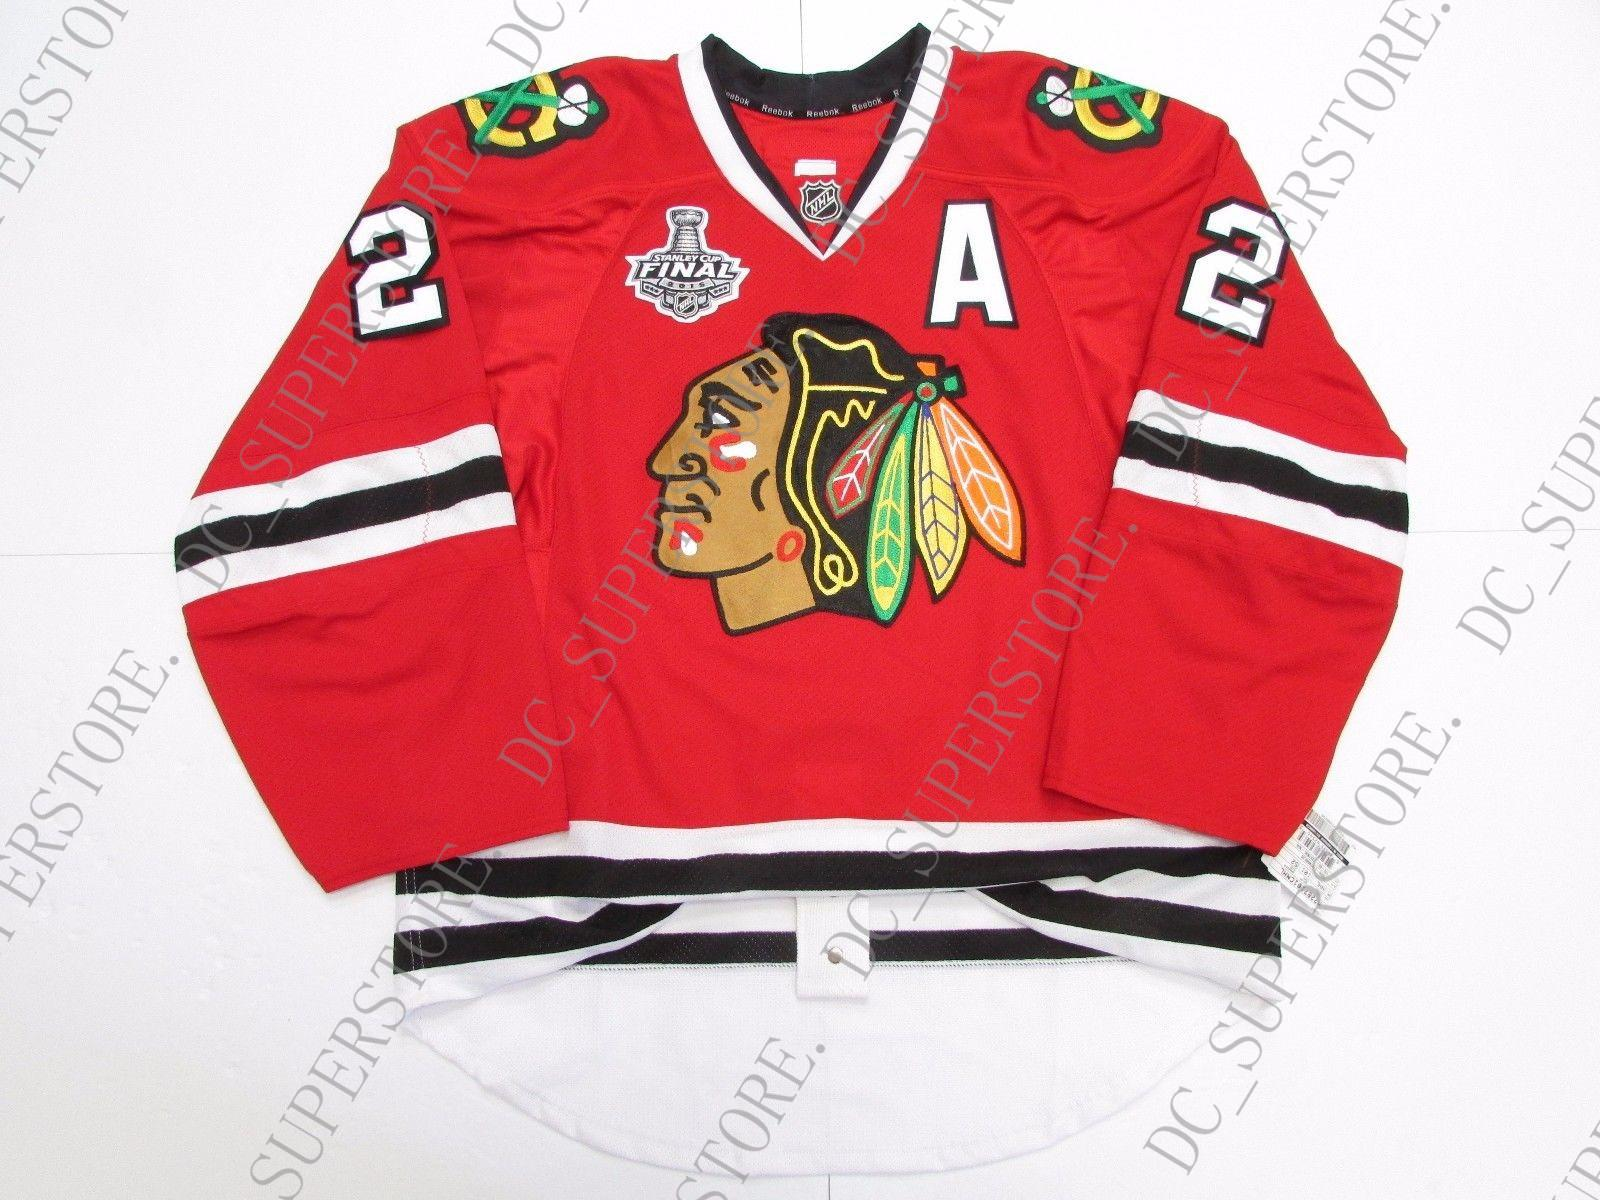 c9076abf935 2019 Cheap Custom KEITH CHICAGO BLACKHAWKS TEAM ISSUED 2015 STANLEY CUP  JERSEY Stitch Add Any Number Any Name Mens Hockey Jersey XS 5XL From  Dc superstore